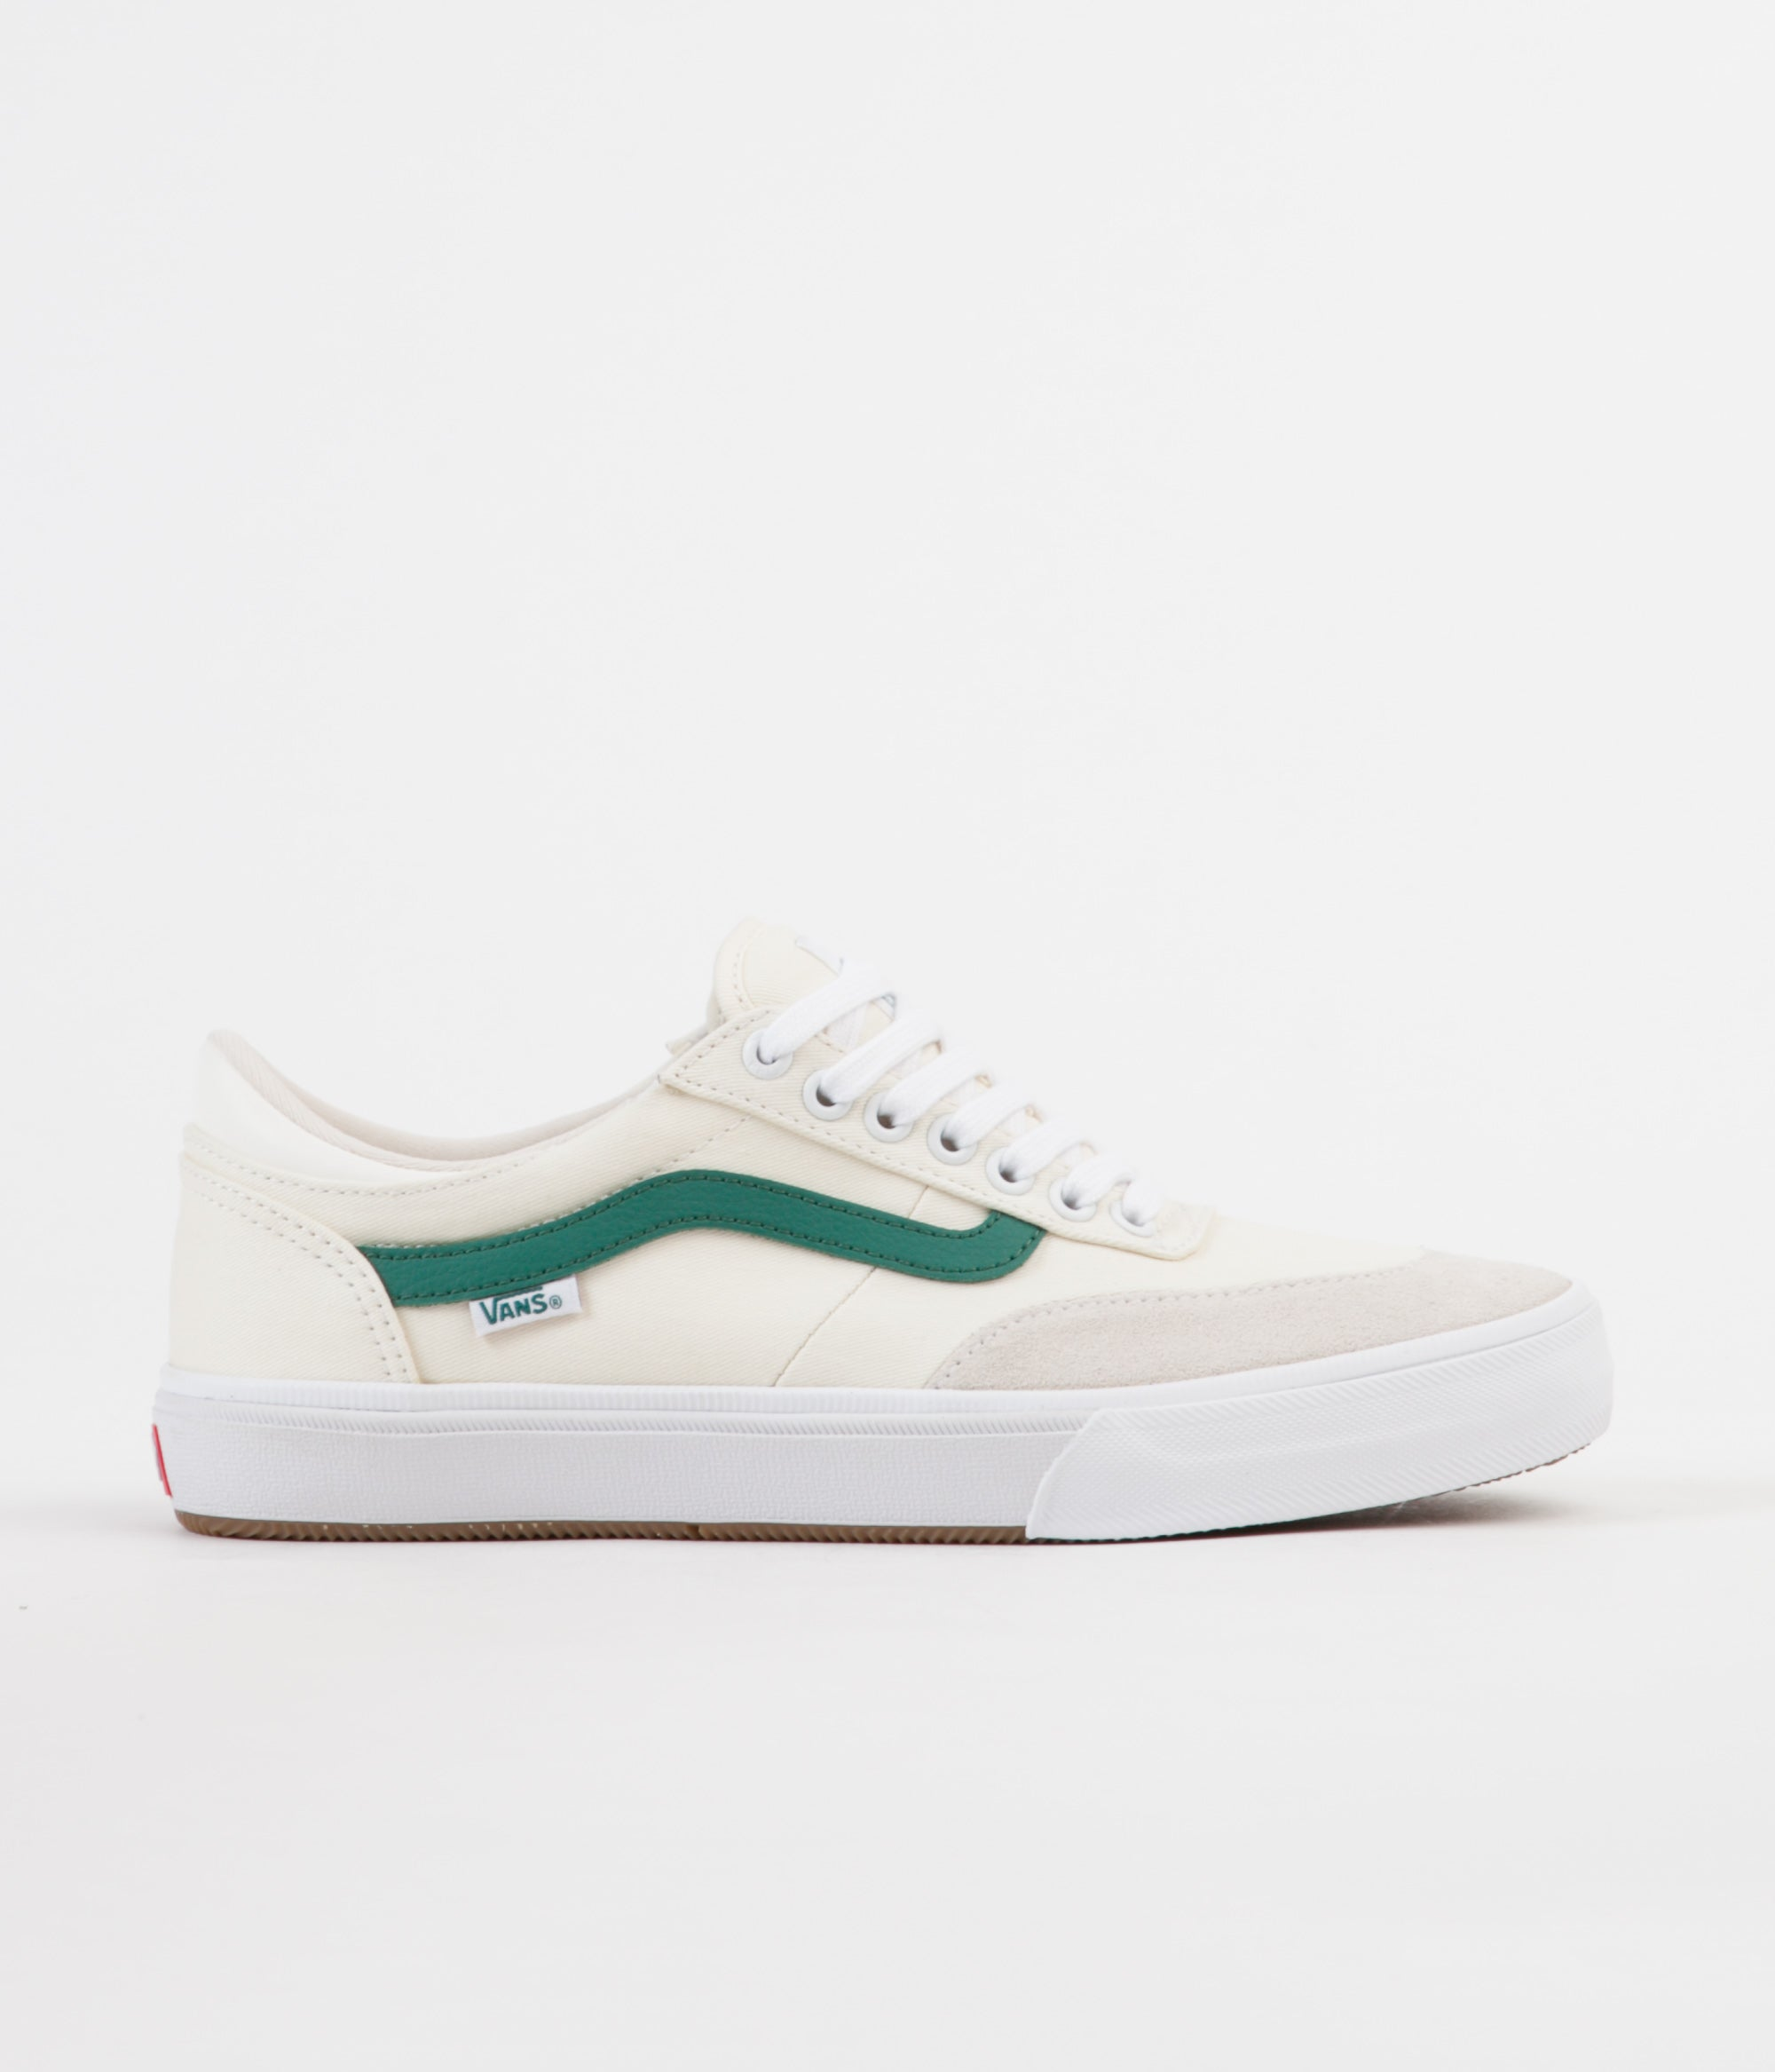 Vans Gilbert Crockett 2 Pro Centre Court Shoes - Classic White   Evergreen 276c0474e